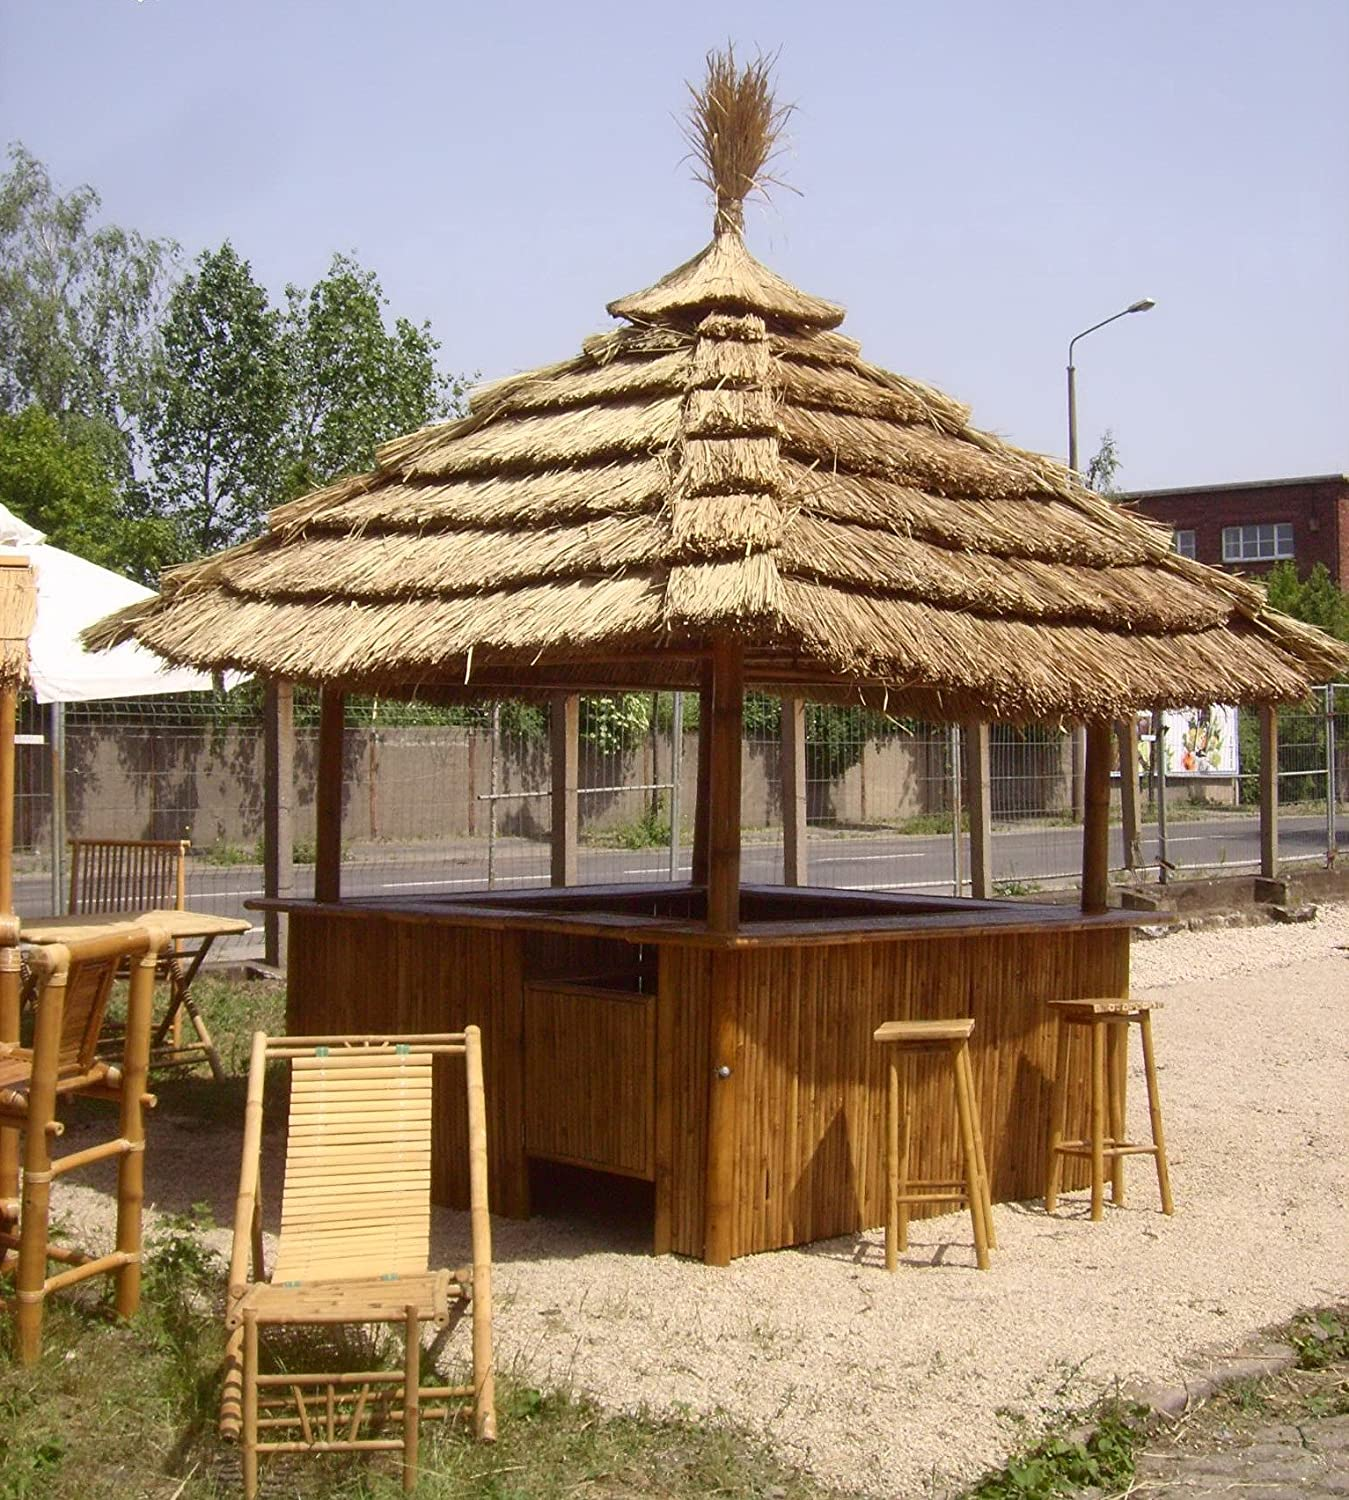 Tiki Bar 360 Degree - Tropical Kiosk with 8 Bar Stools & Thatch Roof